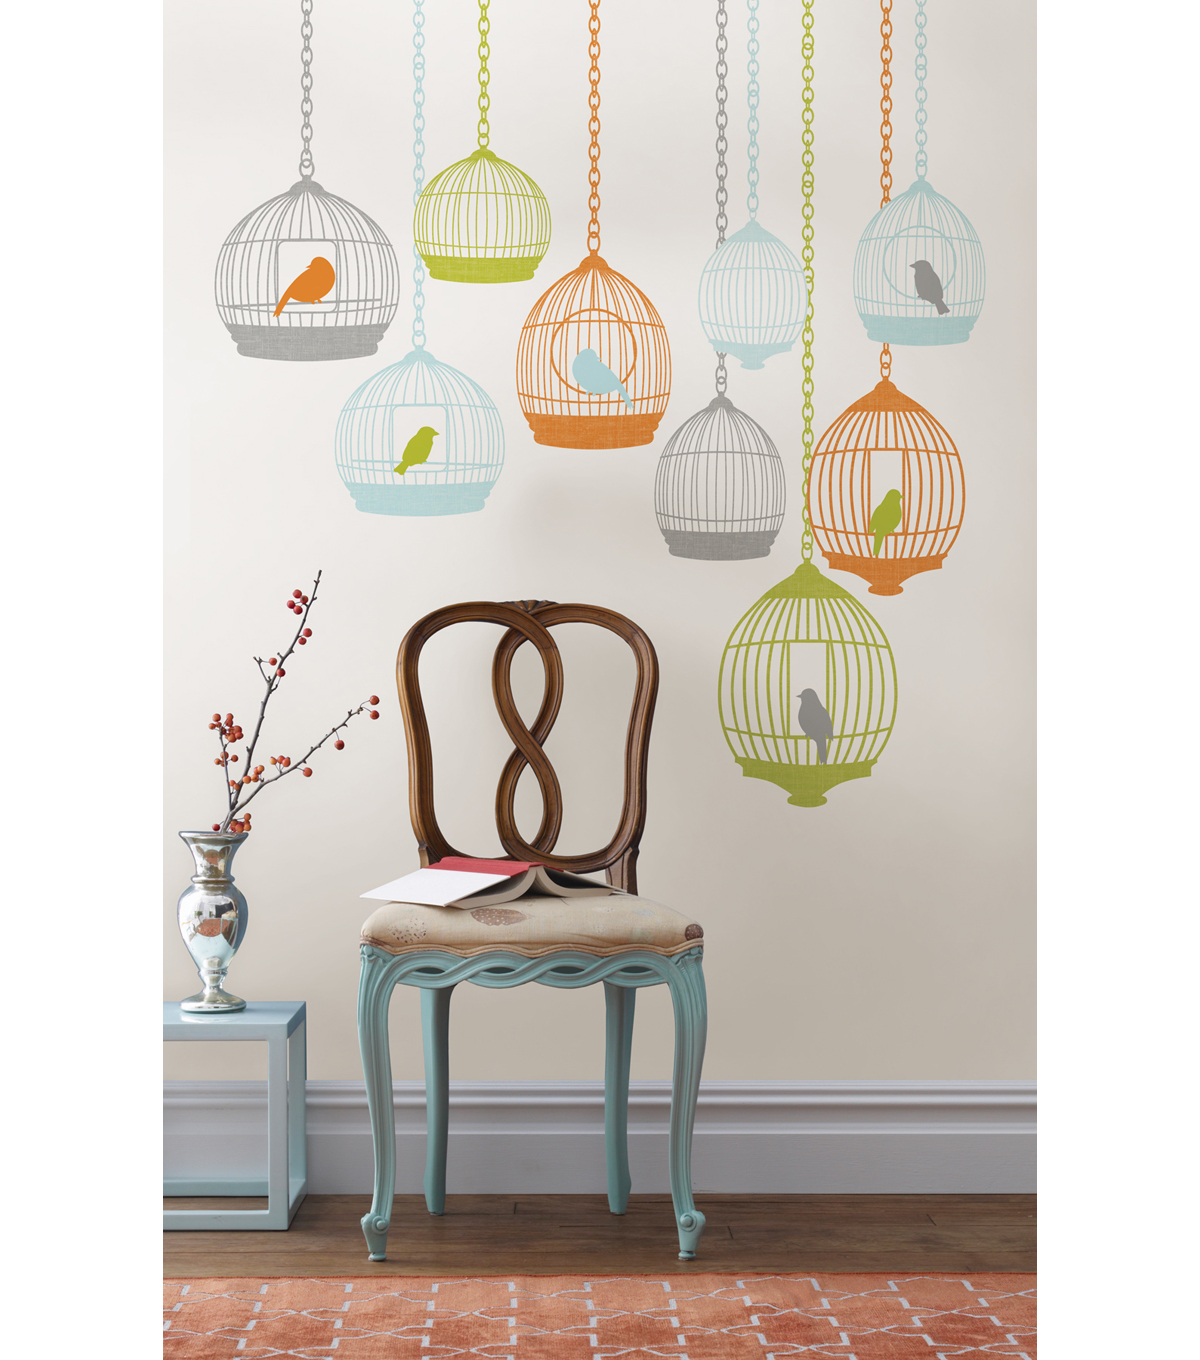 Wall Pops St Tropez Wall Art Decal Kit, 25 Piece Set